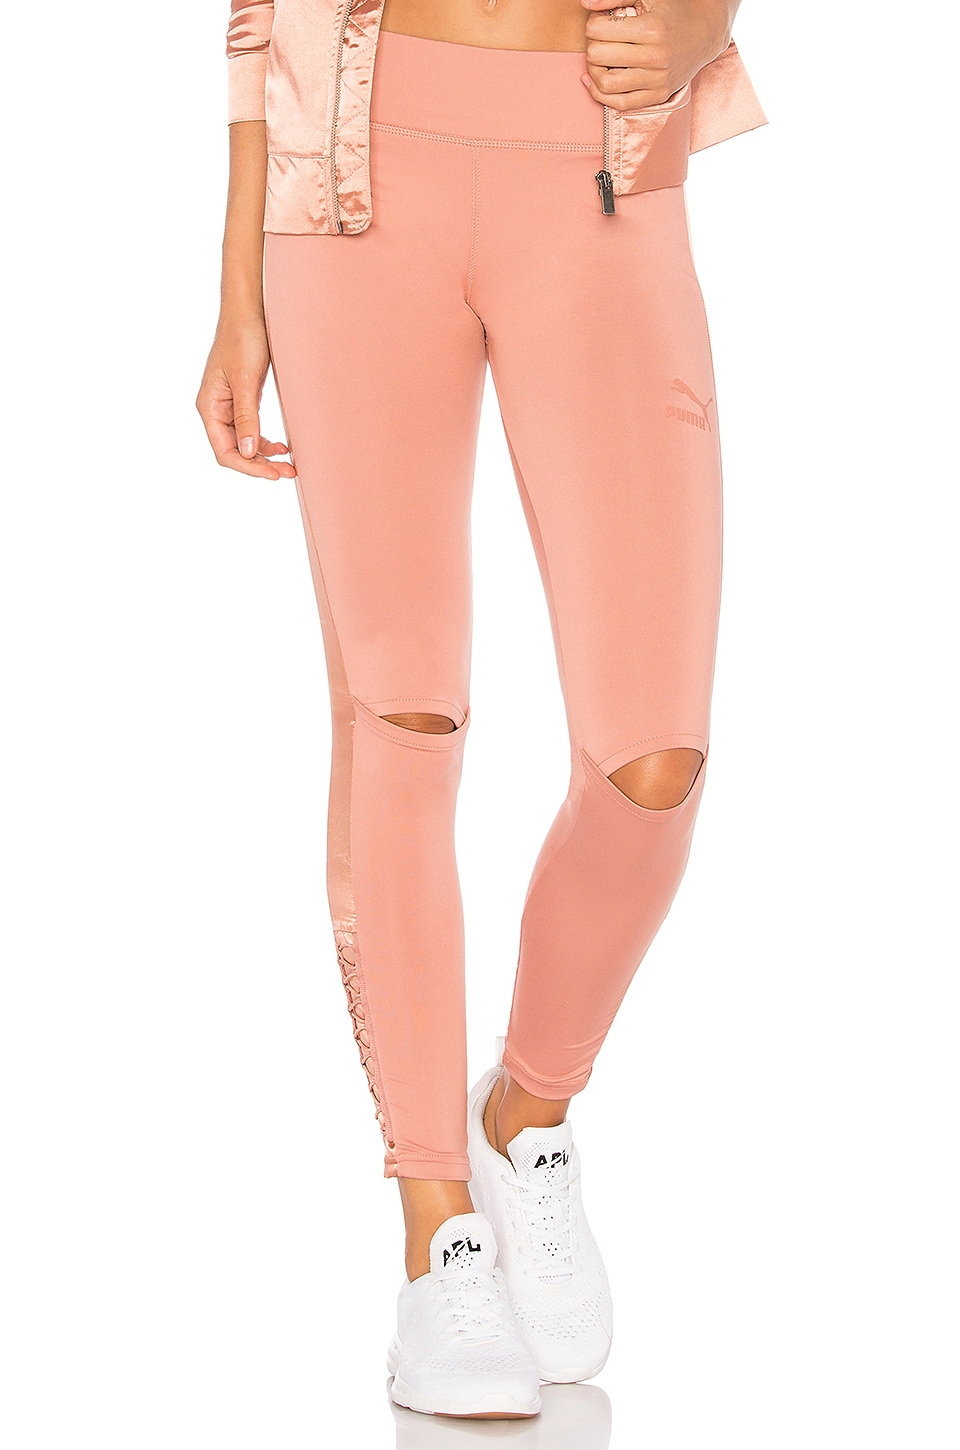 Puma Lux Legging in Cameo Brown